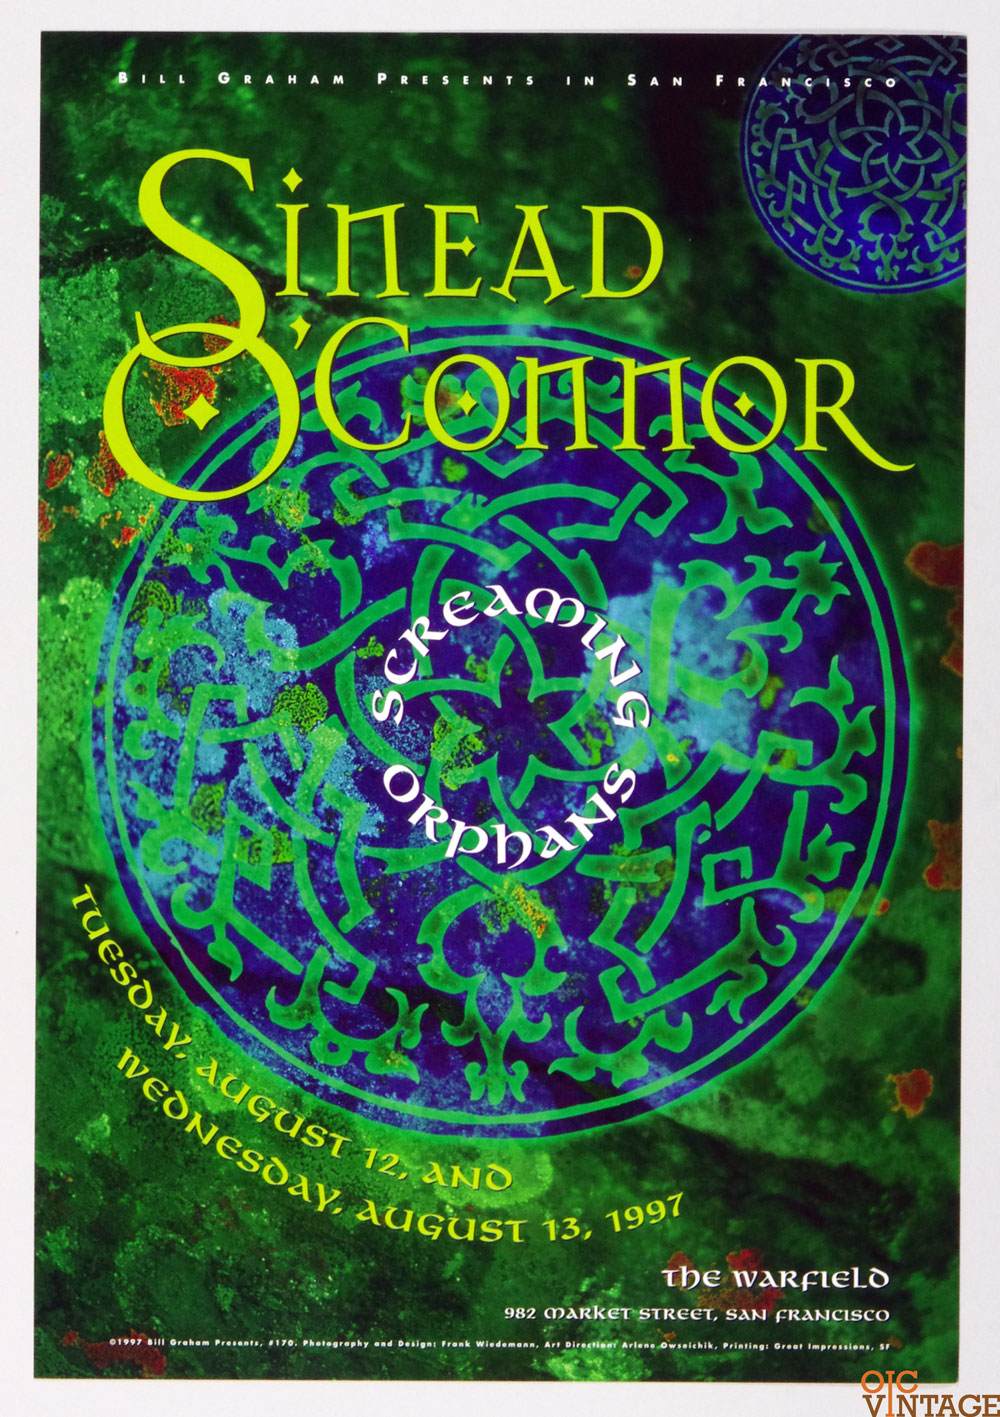 Bill Graham Presents Poster 1997 Aug 13 Sinead O'Connor #170